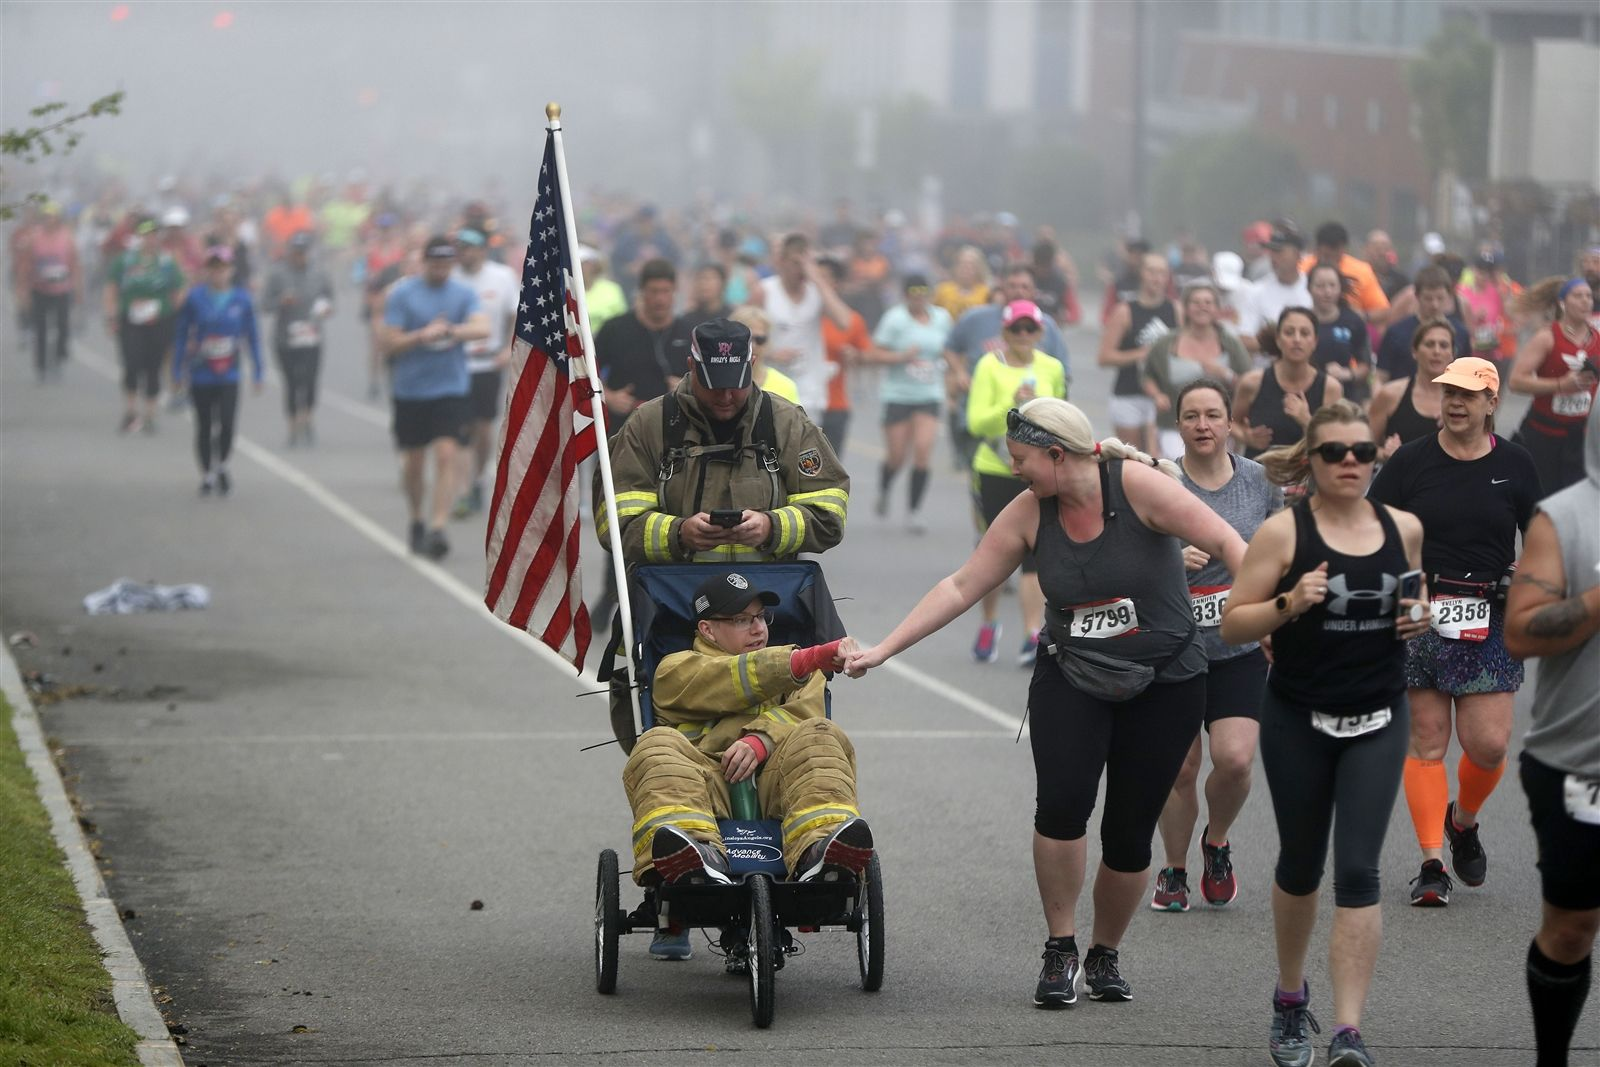 Firefighter Tim Richardson of Buffalo gets a fist bump from a runner as he's pushed by Ryan Mast, a firefighter from New Orleans, during the Buffalo Marathon Sunday, May 26, 2019.